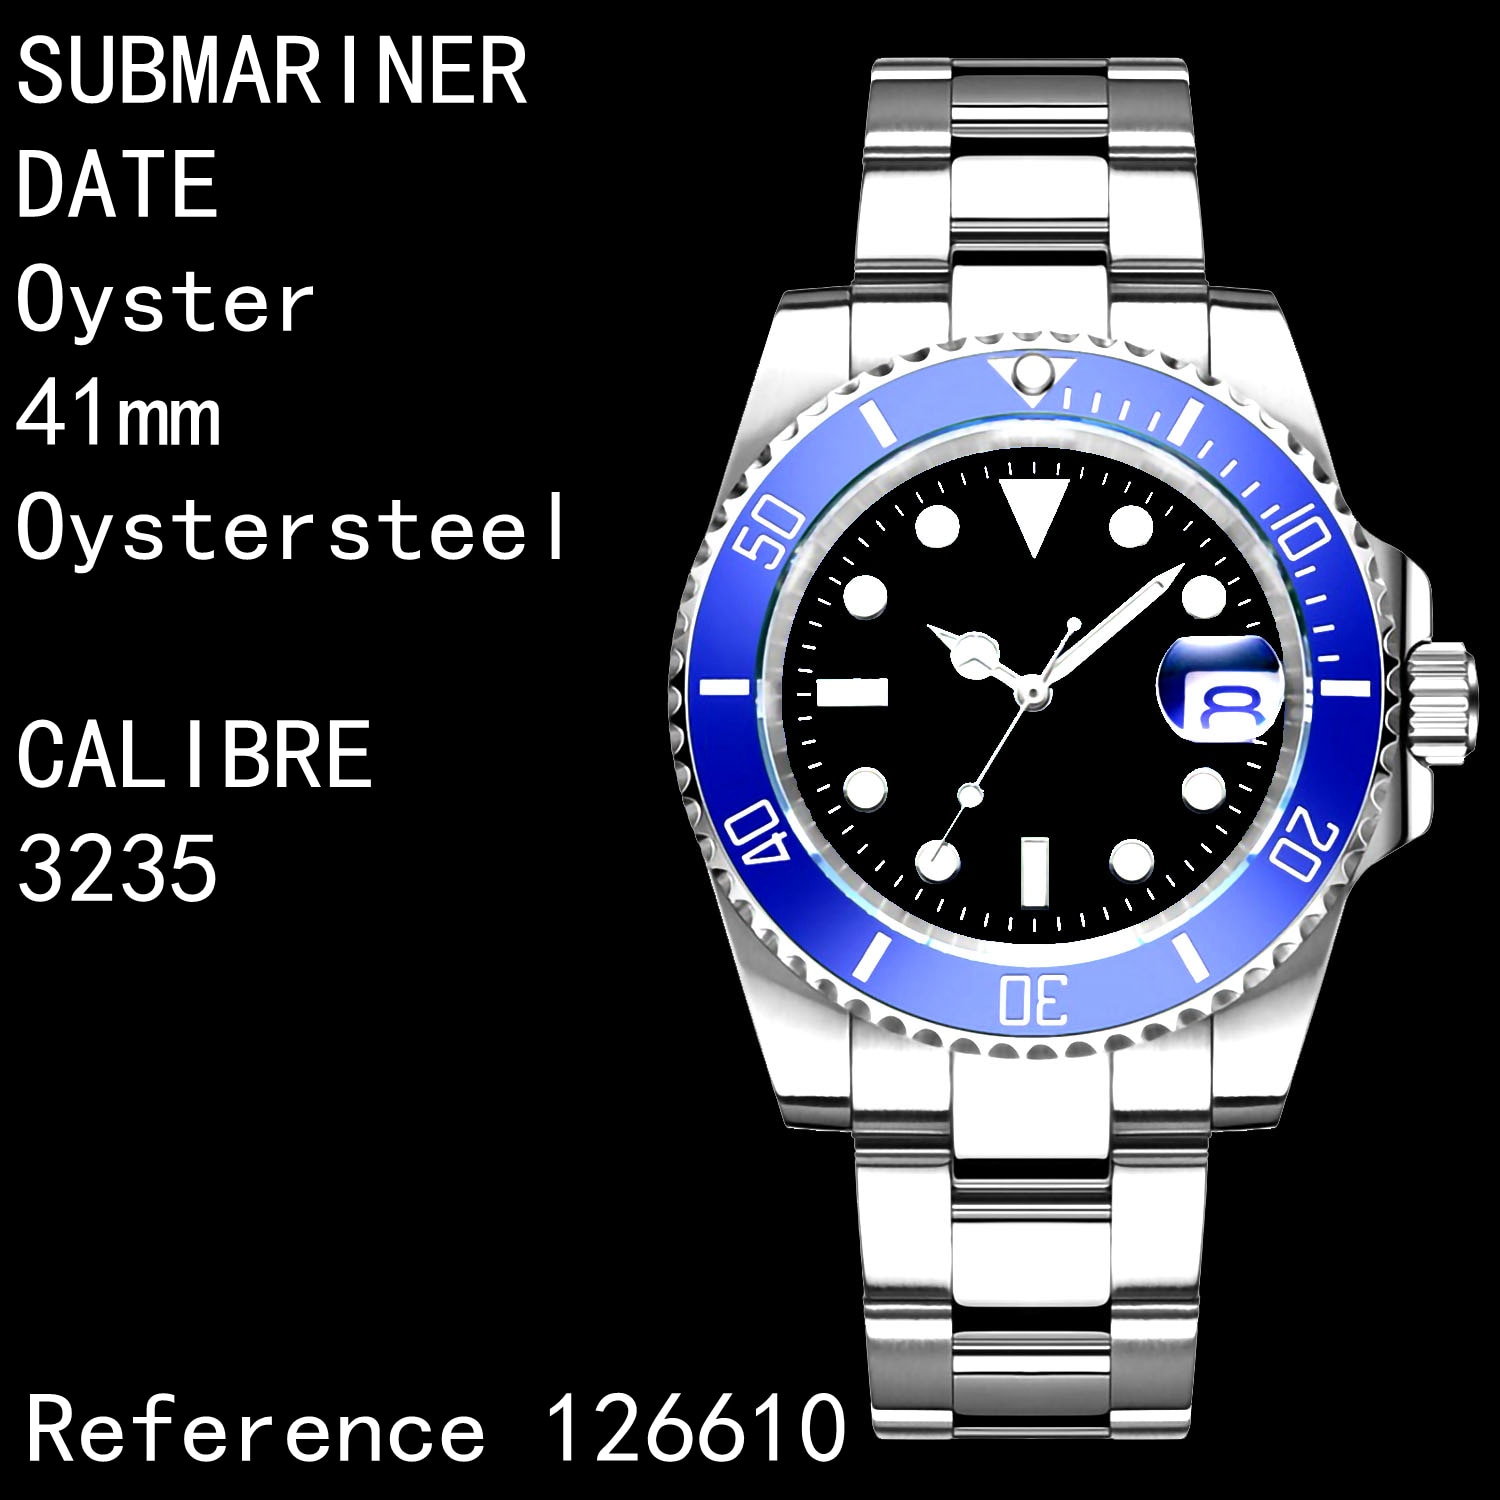 Men's Automatic Mechanical Watch Submariner ceramics 126619 stainless steel 1:1 Best Edition 3235 Br